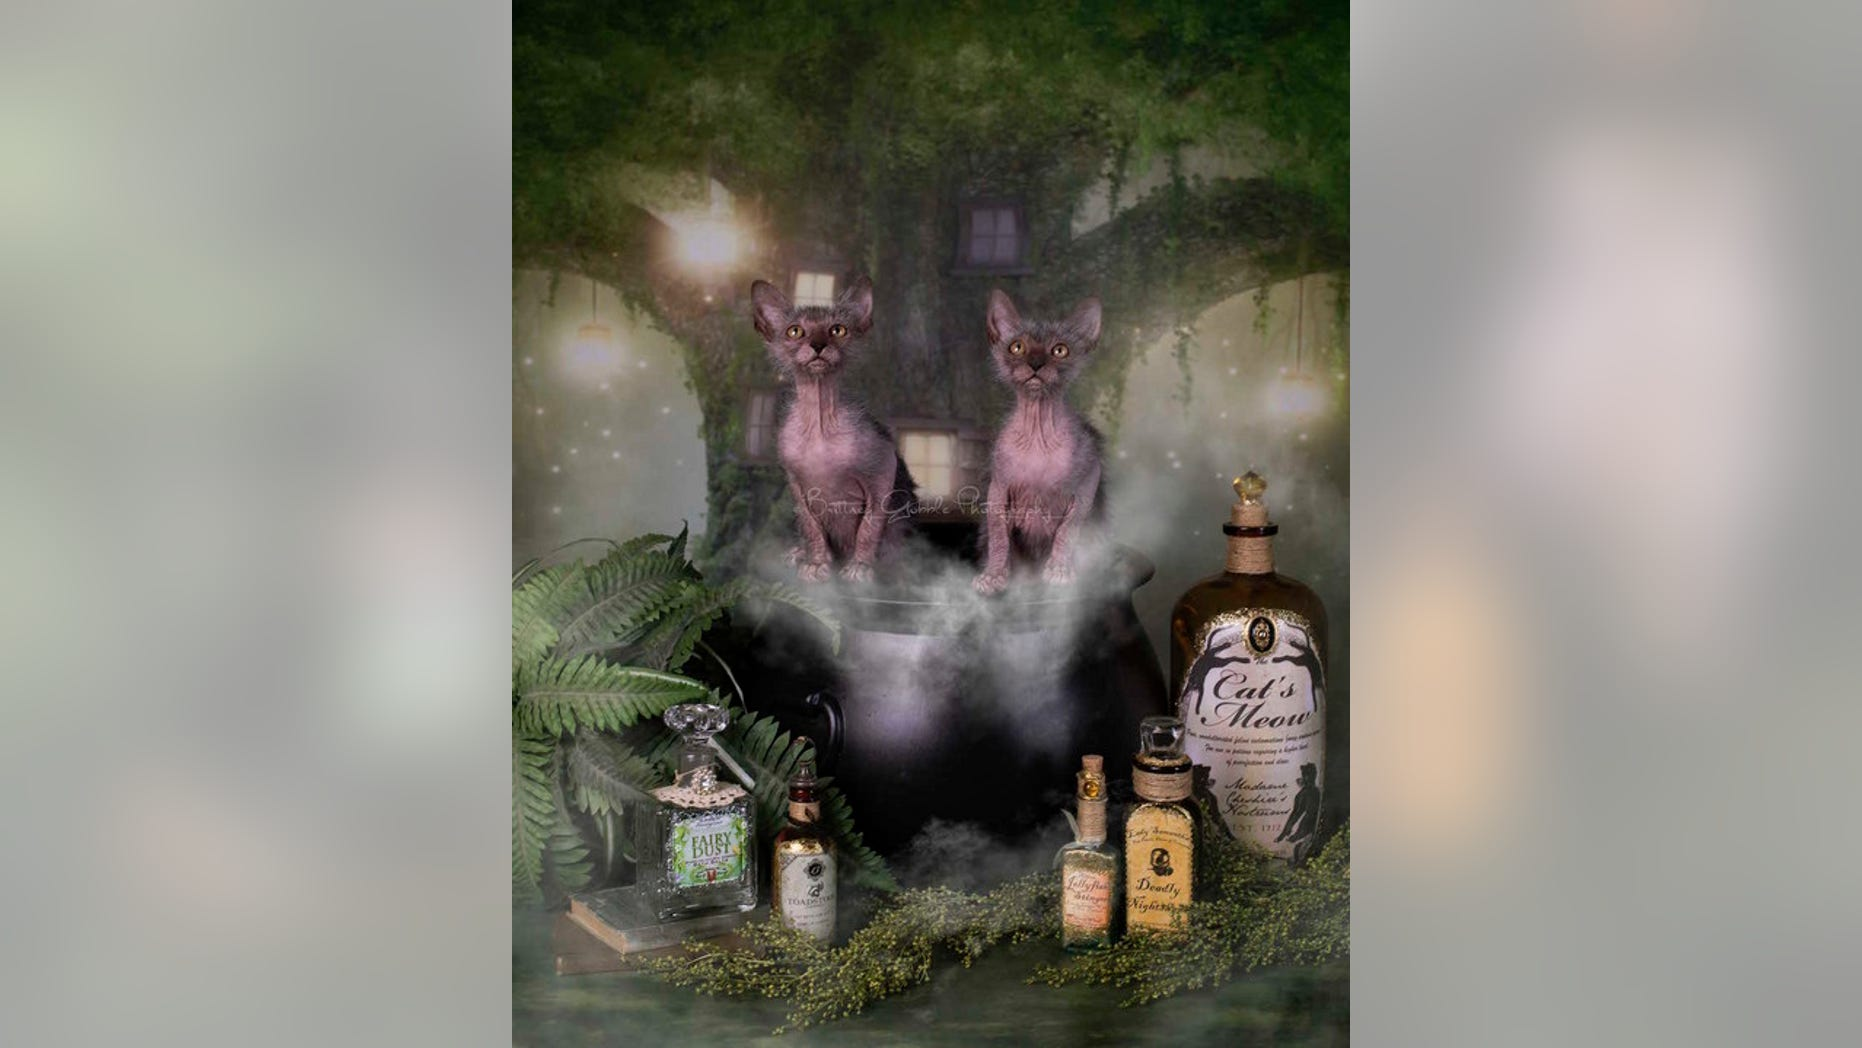 These two lykoi females bare a striking resemblance to a mythological creature — the werewolf.